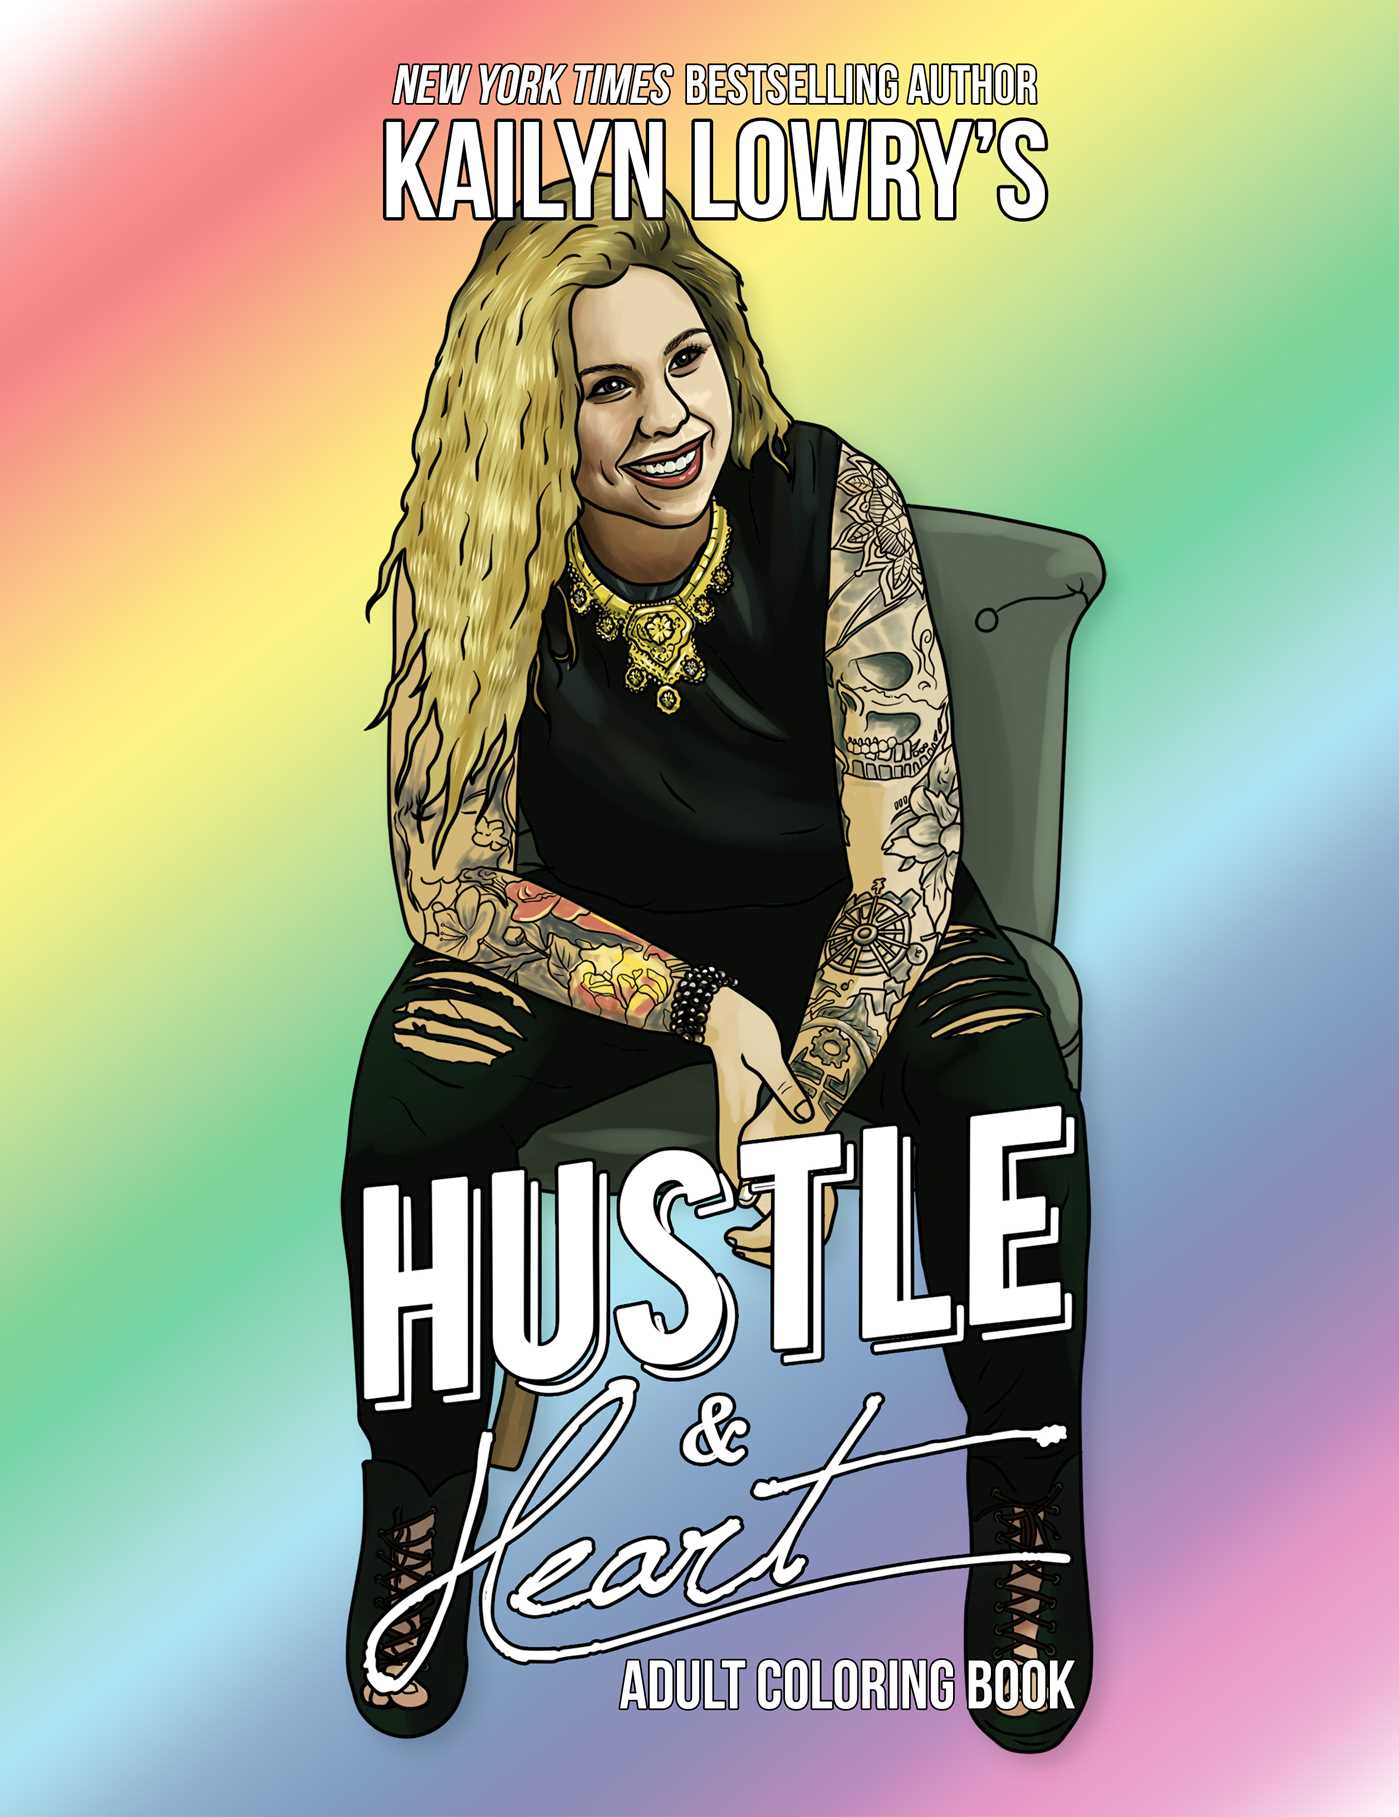 Kailyn Lowry S Hustle And Heart Adult Coloring Book Book By Kailyn Lowry Official Publisher Page Simon Schuster